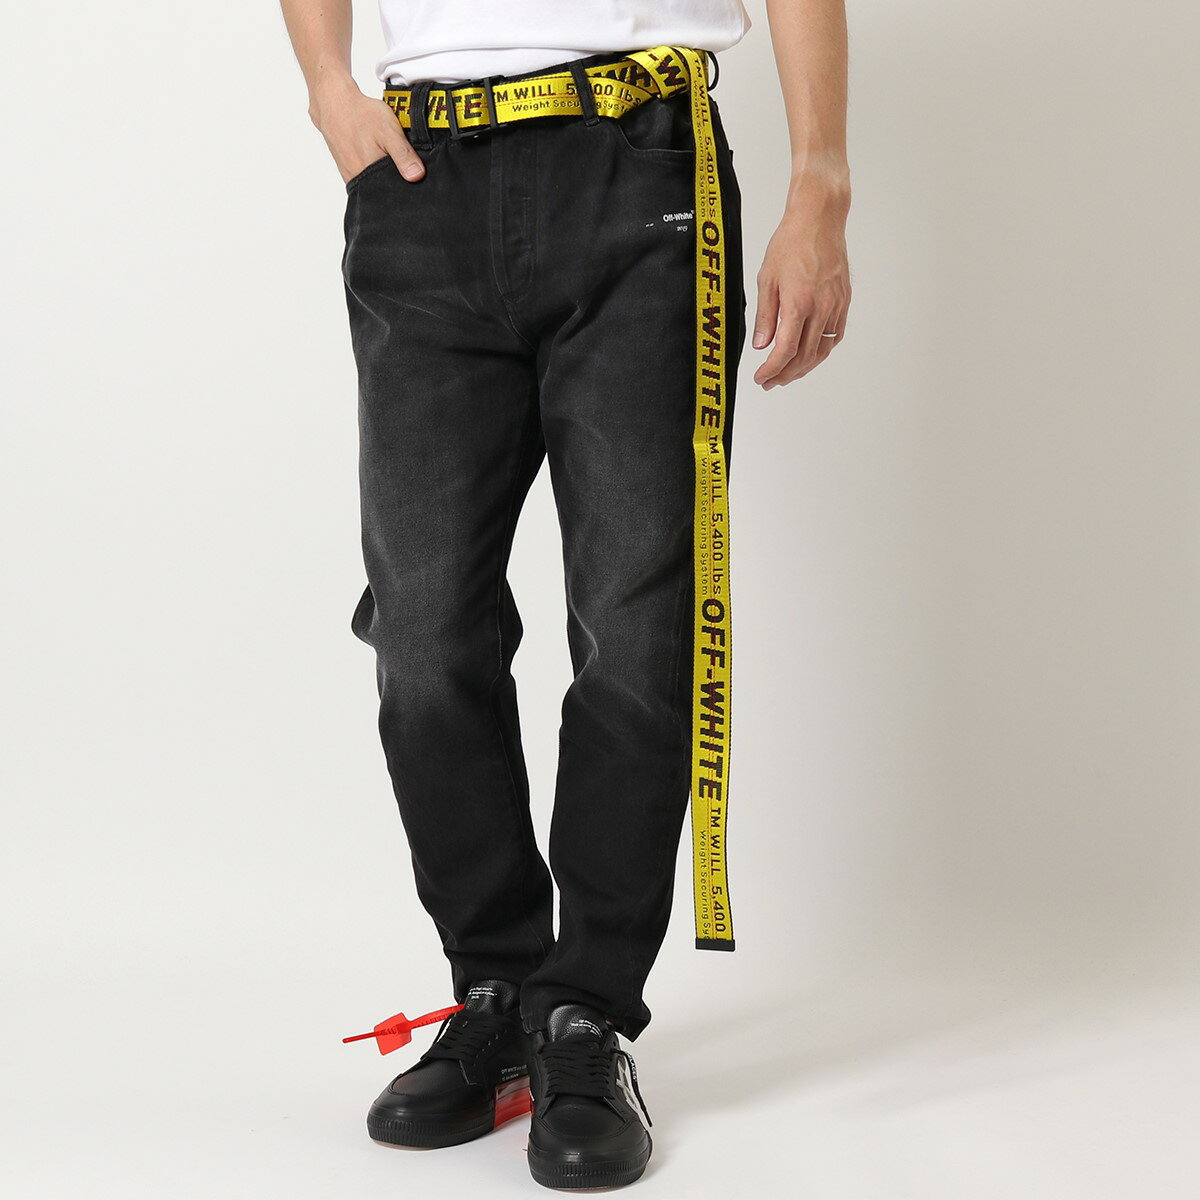 ベルト・サスペンダー, メンズベルト 500OFF28OFF-WHITE VIRGIL ABLOH OMRB012 OWRB009 INDUSTRIAL BELT 3.5 YELLOW